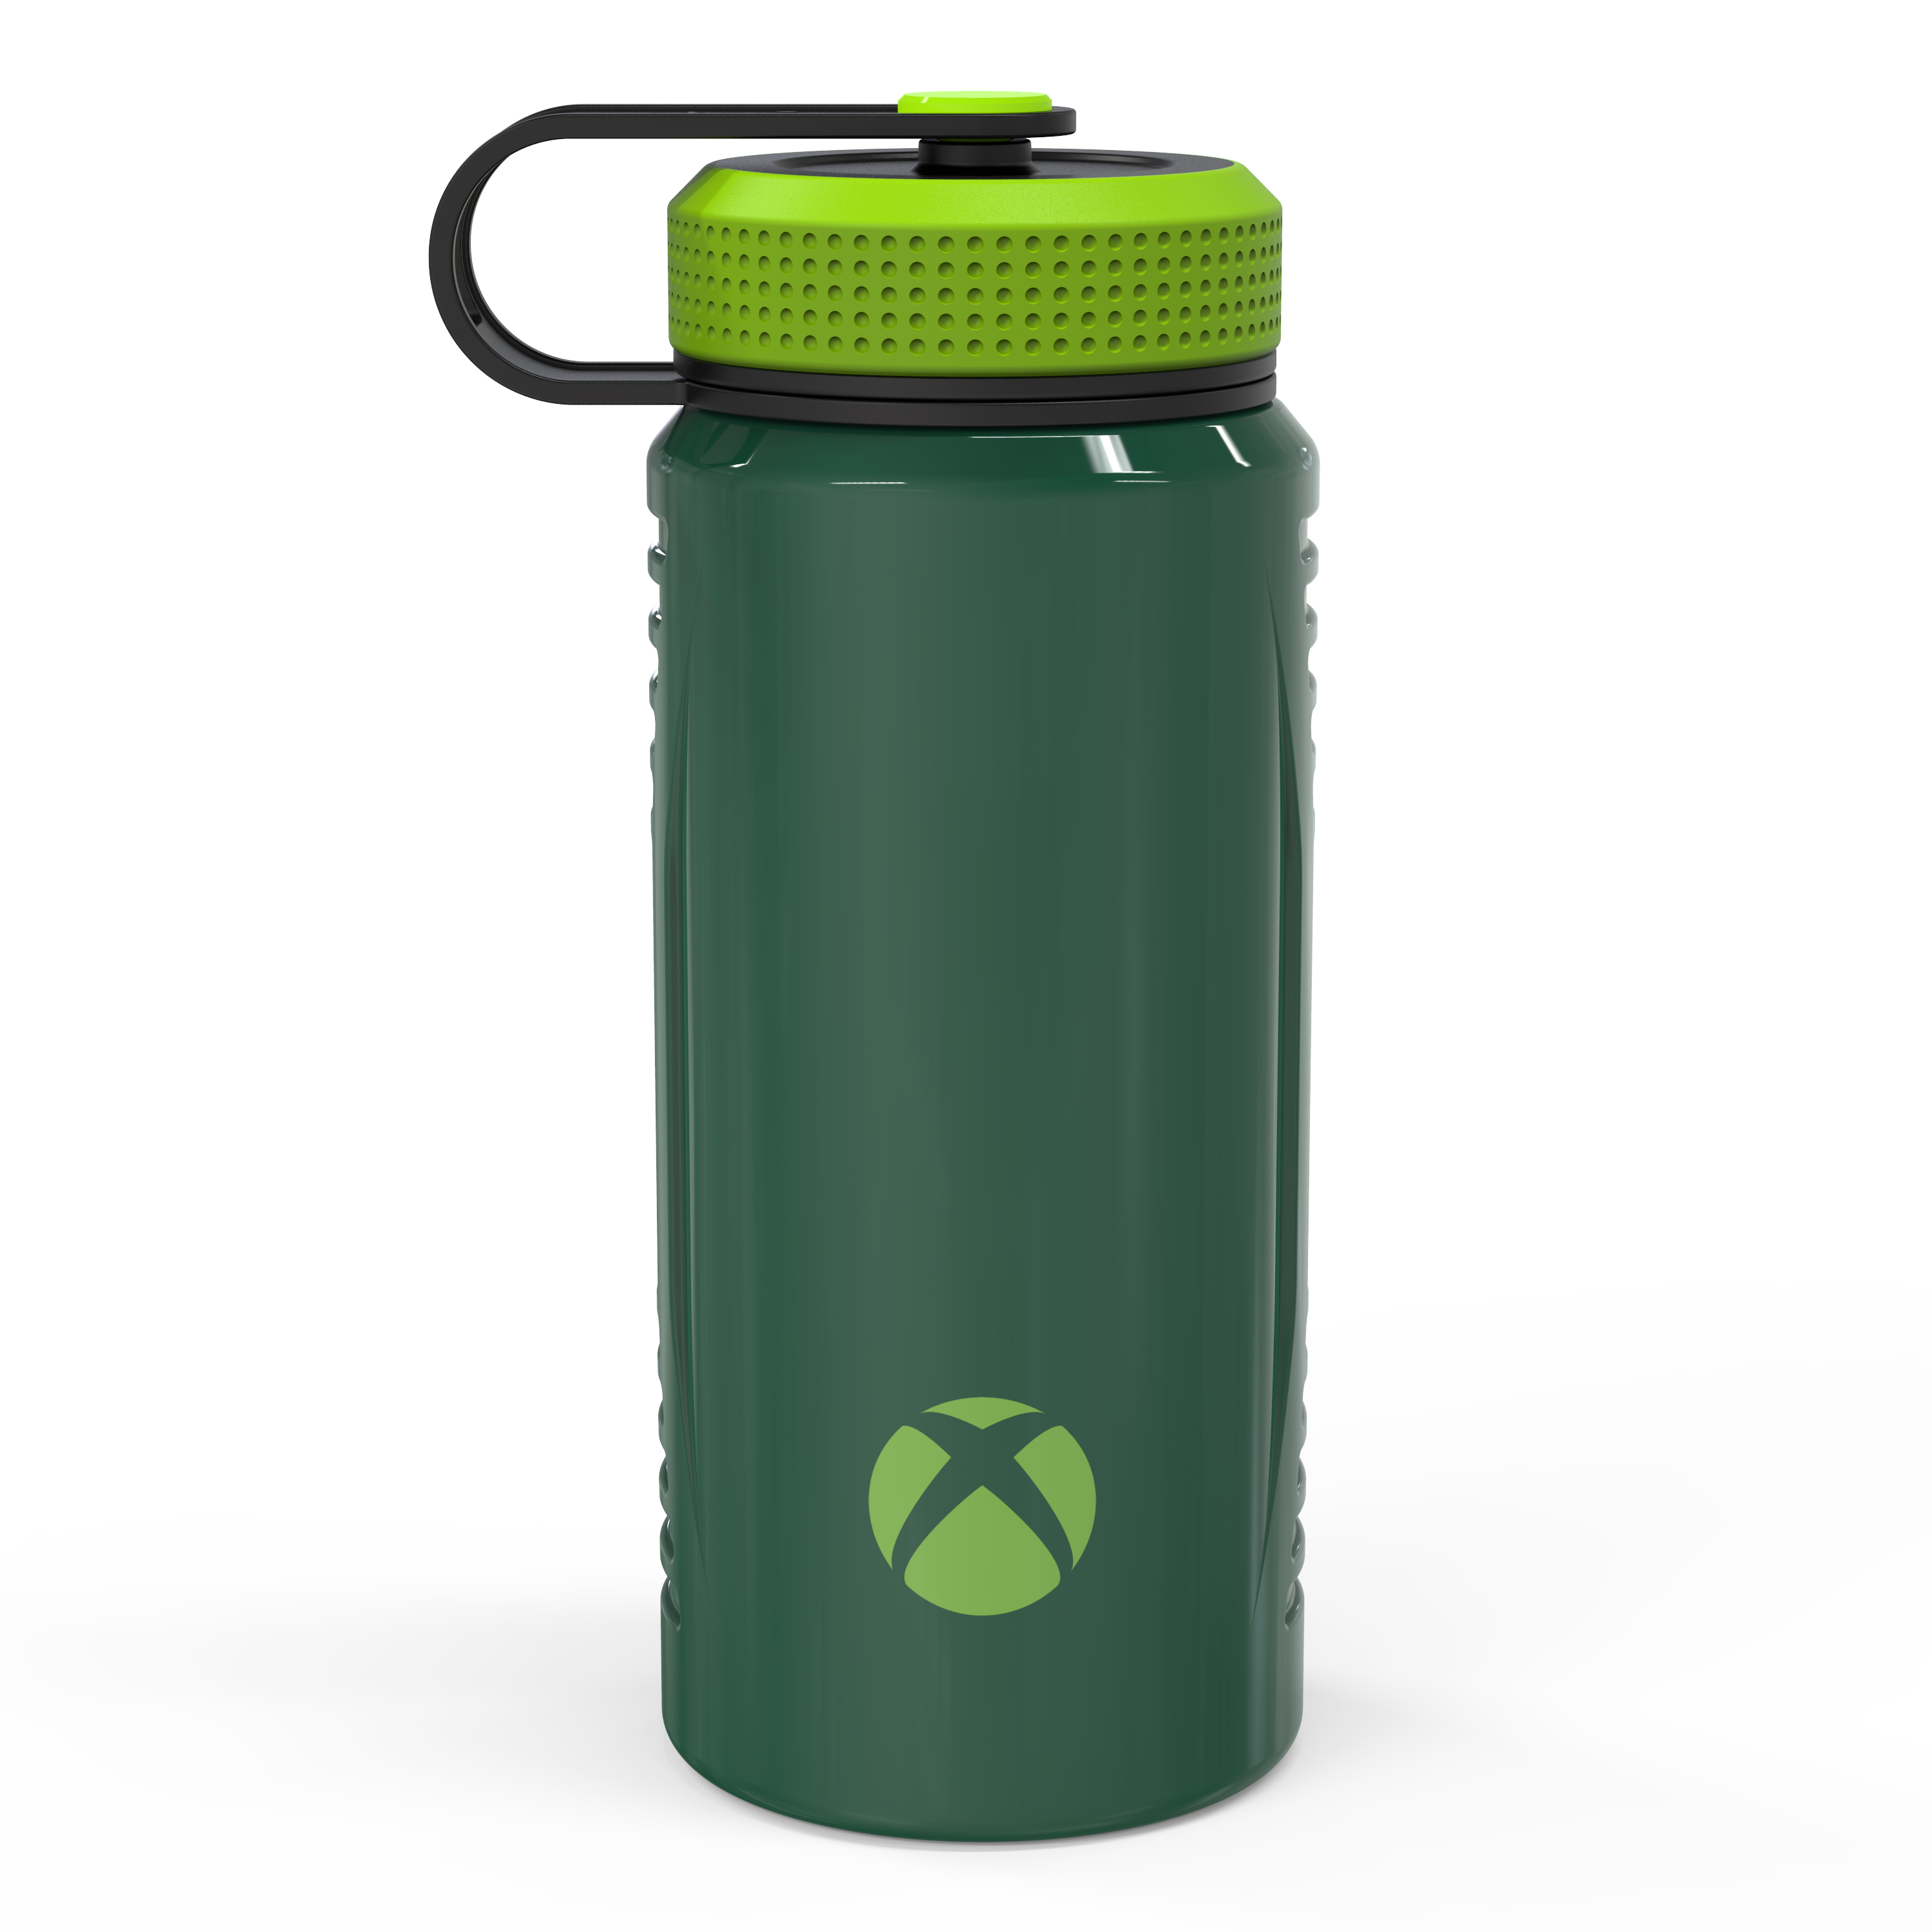 Xbox 24 ounce Stainless Steel Insulated Water Bottle, For the Win slideshow image 2